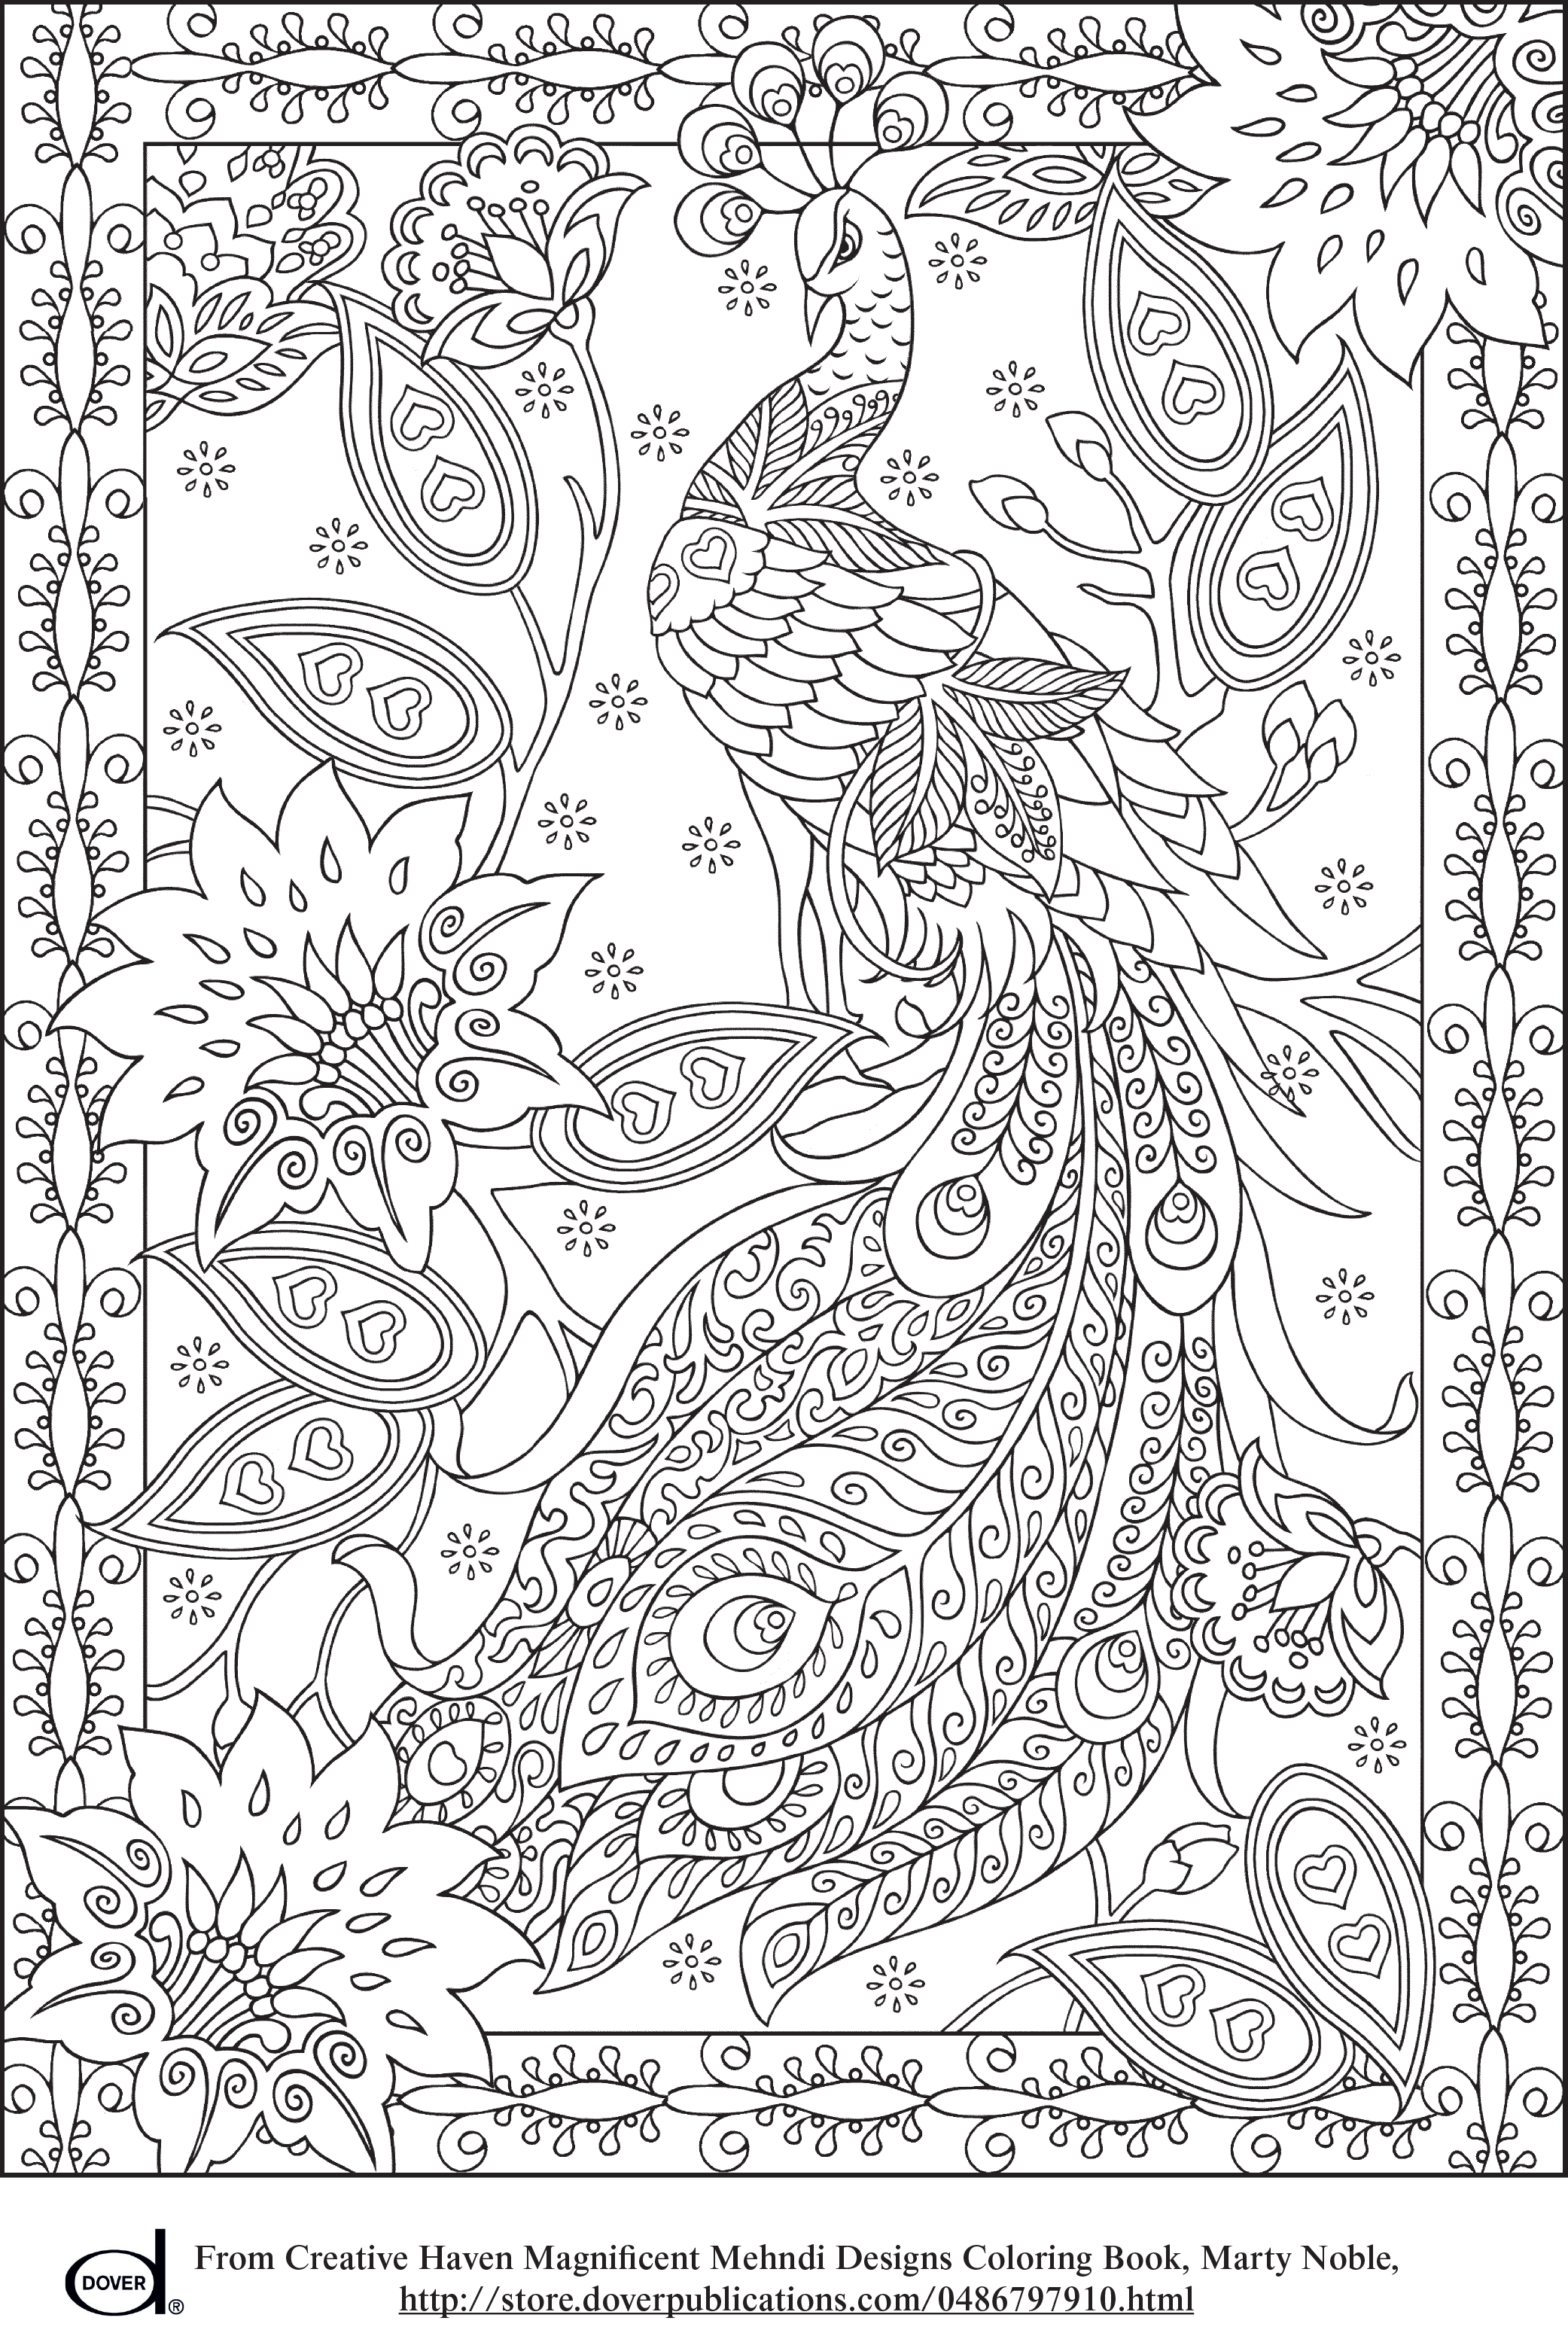 peacock feather coloring pages colouring adult detailed advanced printable kleuren voor. Black Bedroom Furniture Sets. Home Design Ideas